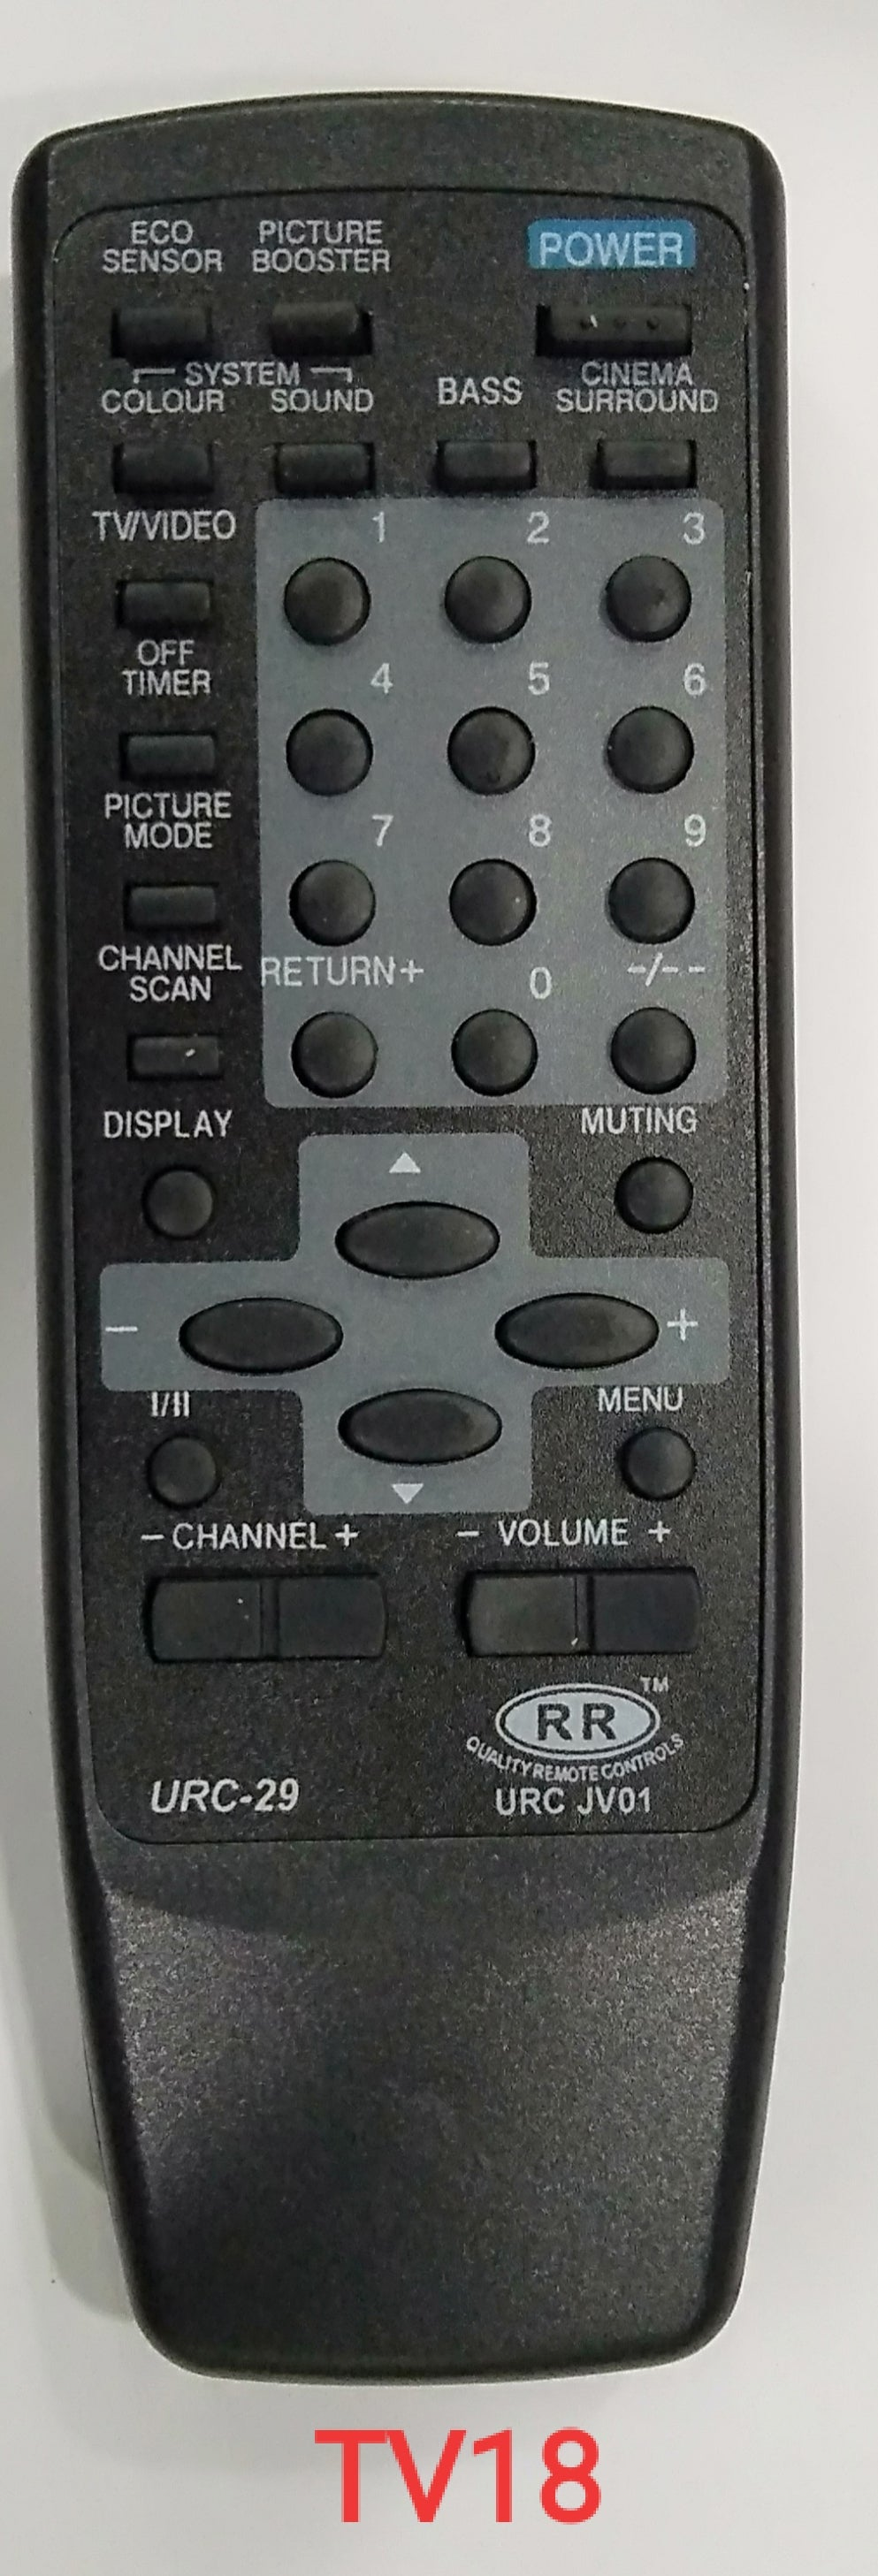 JVC Universal TV remote controller 29 (TV18)